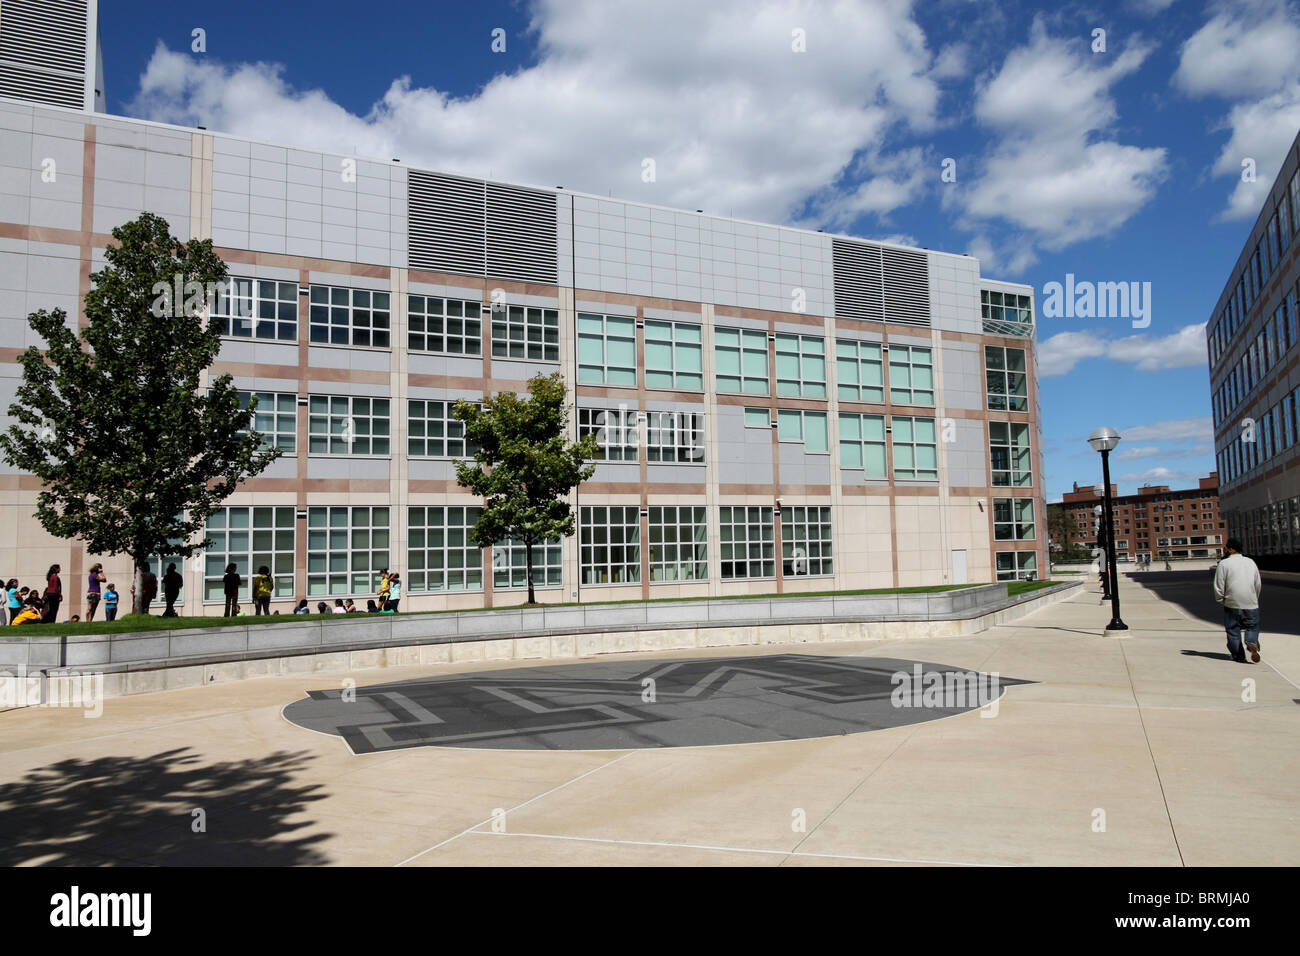 University Of Michigan Modern Architecture   Stock Image